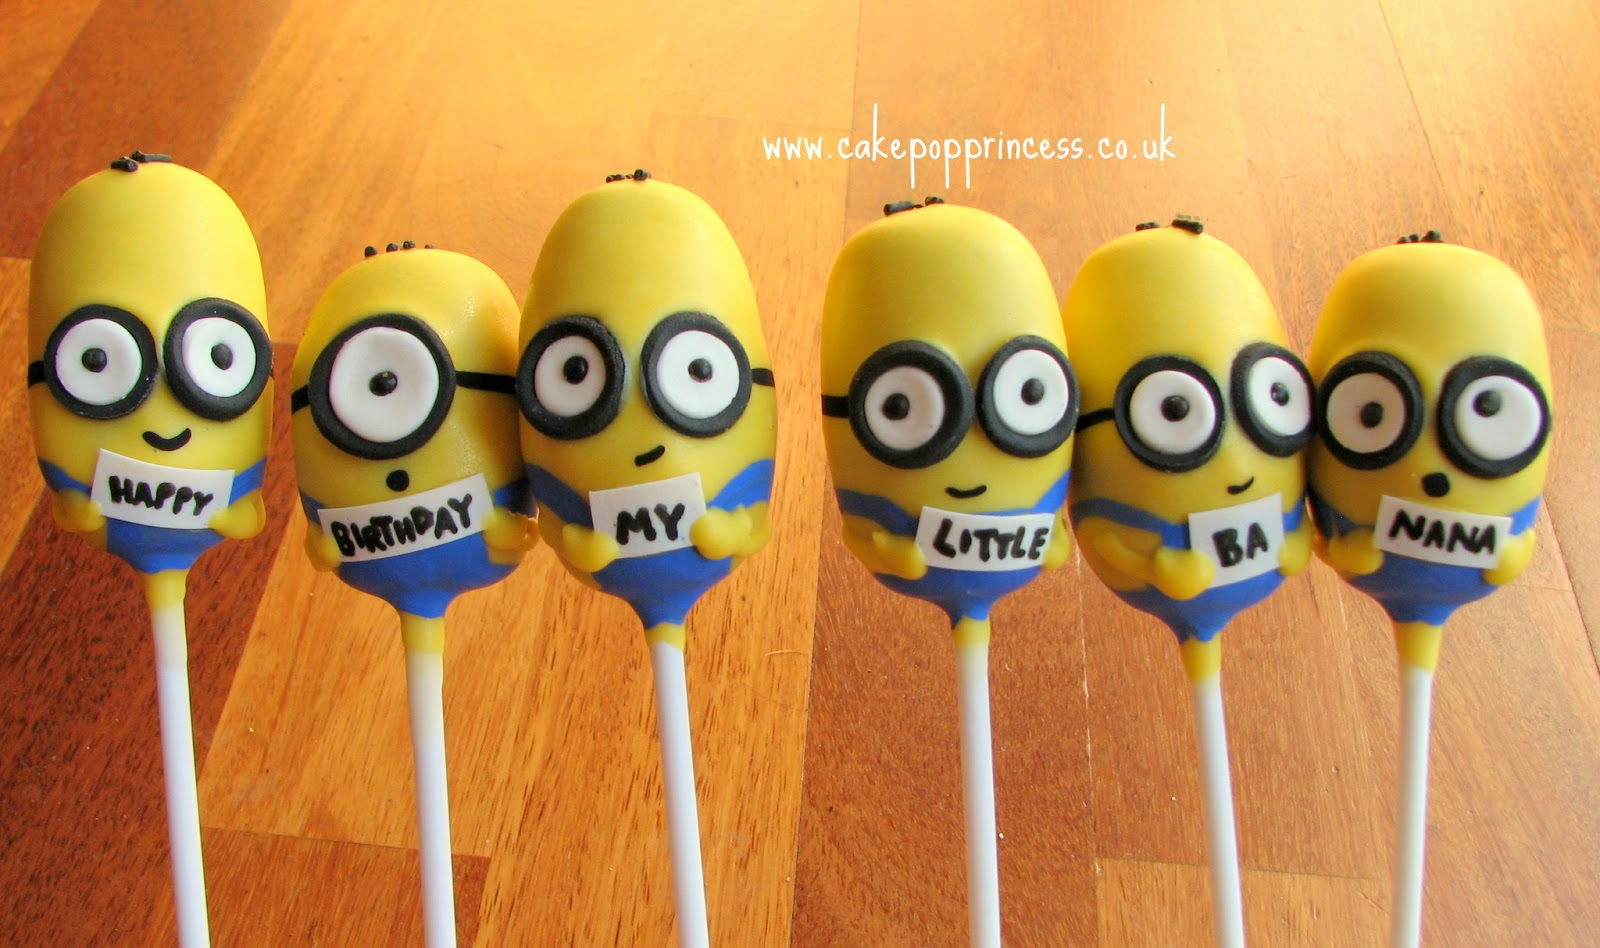 Images Of Minion Cake Pops : Cake Pop Princess: Very late makes to share - post 1!